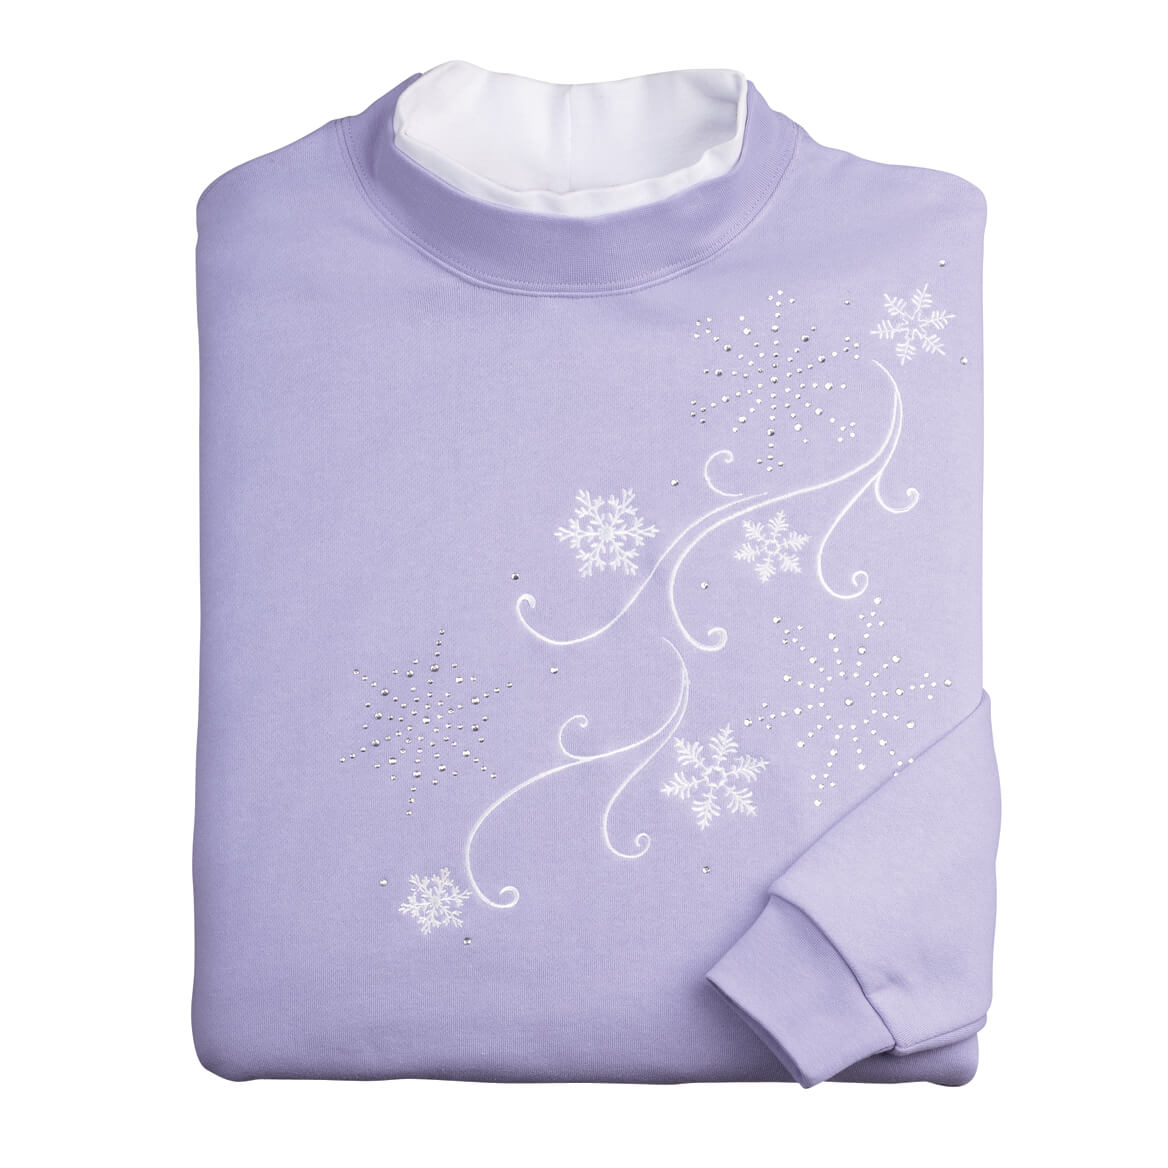 Embroidered Cascading Snowflakes Sweatshirt by Sawyer Creek-359981